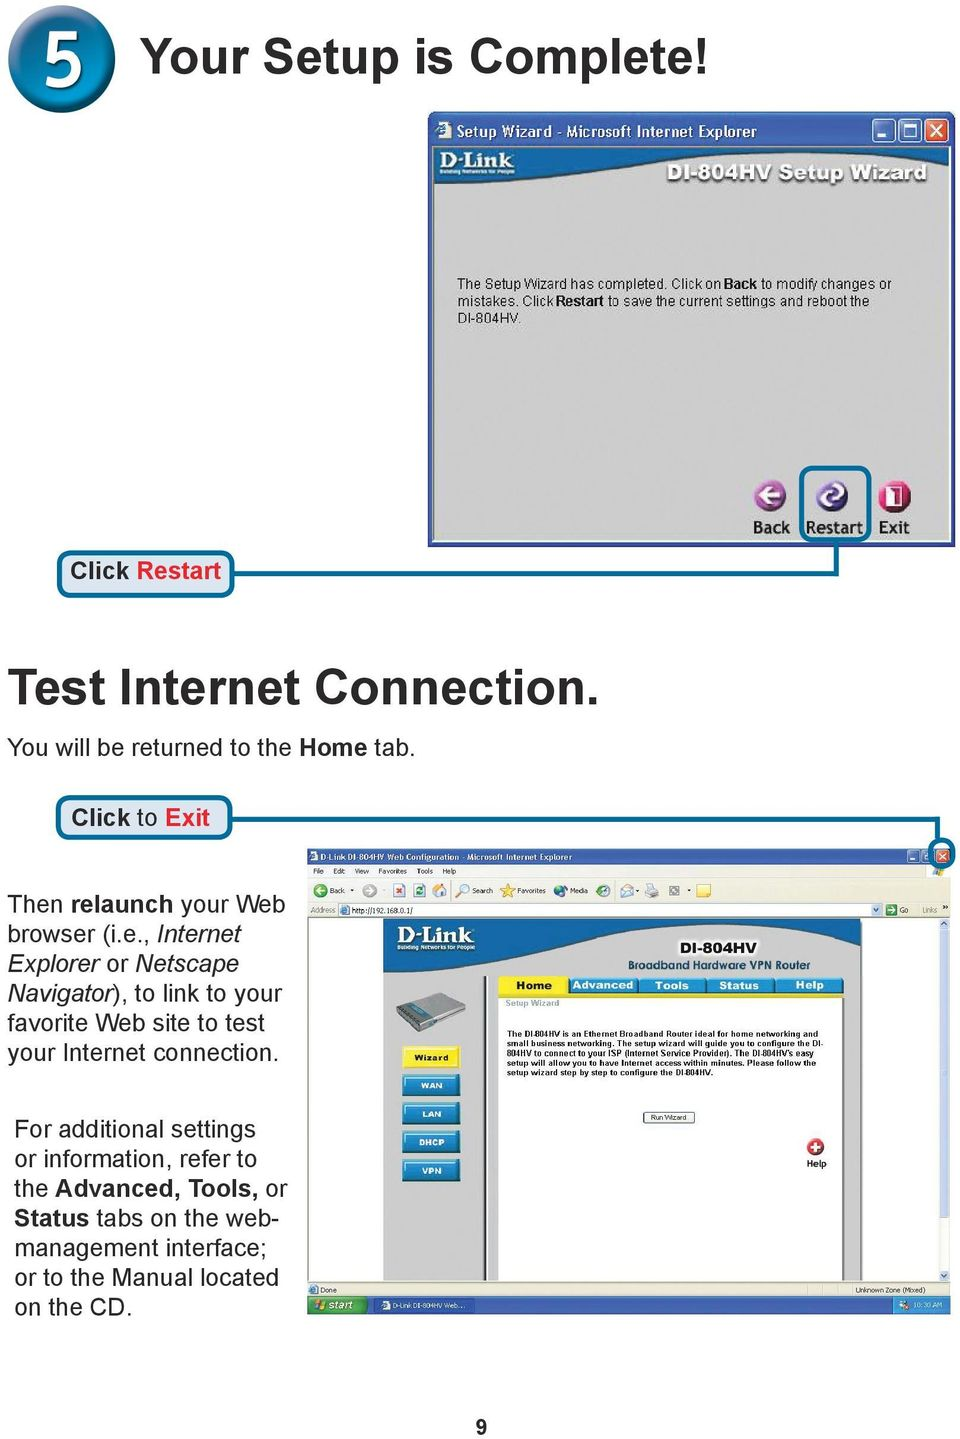 relaunch your Web browser (i.e., Internet Explorer or Netscape Navigator), to link to your favorite Web